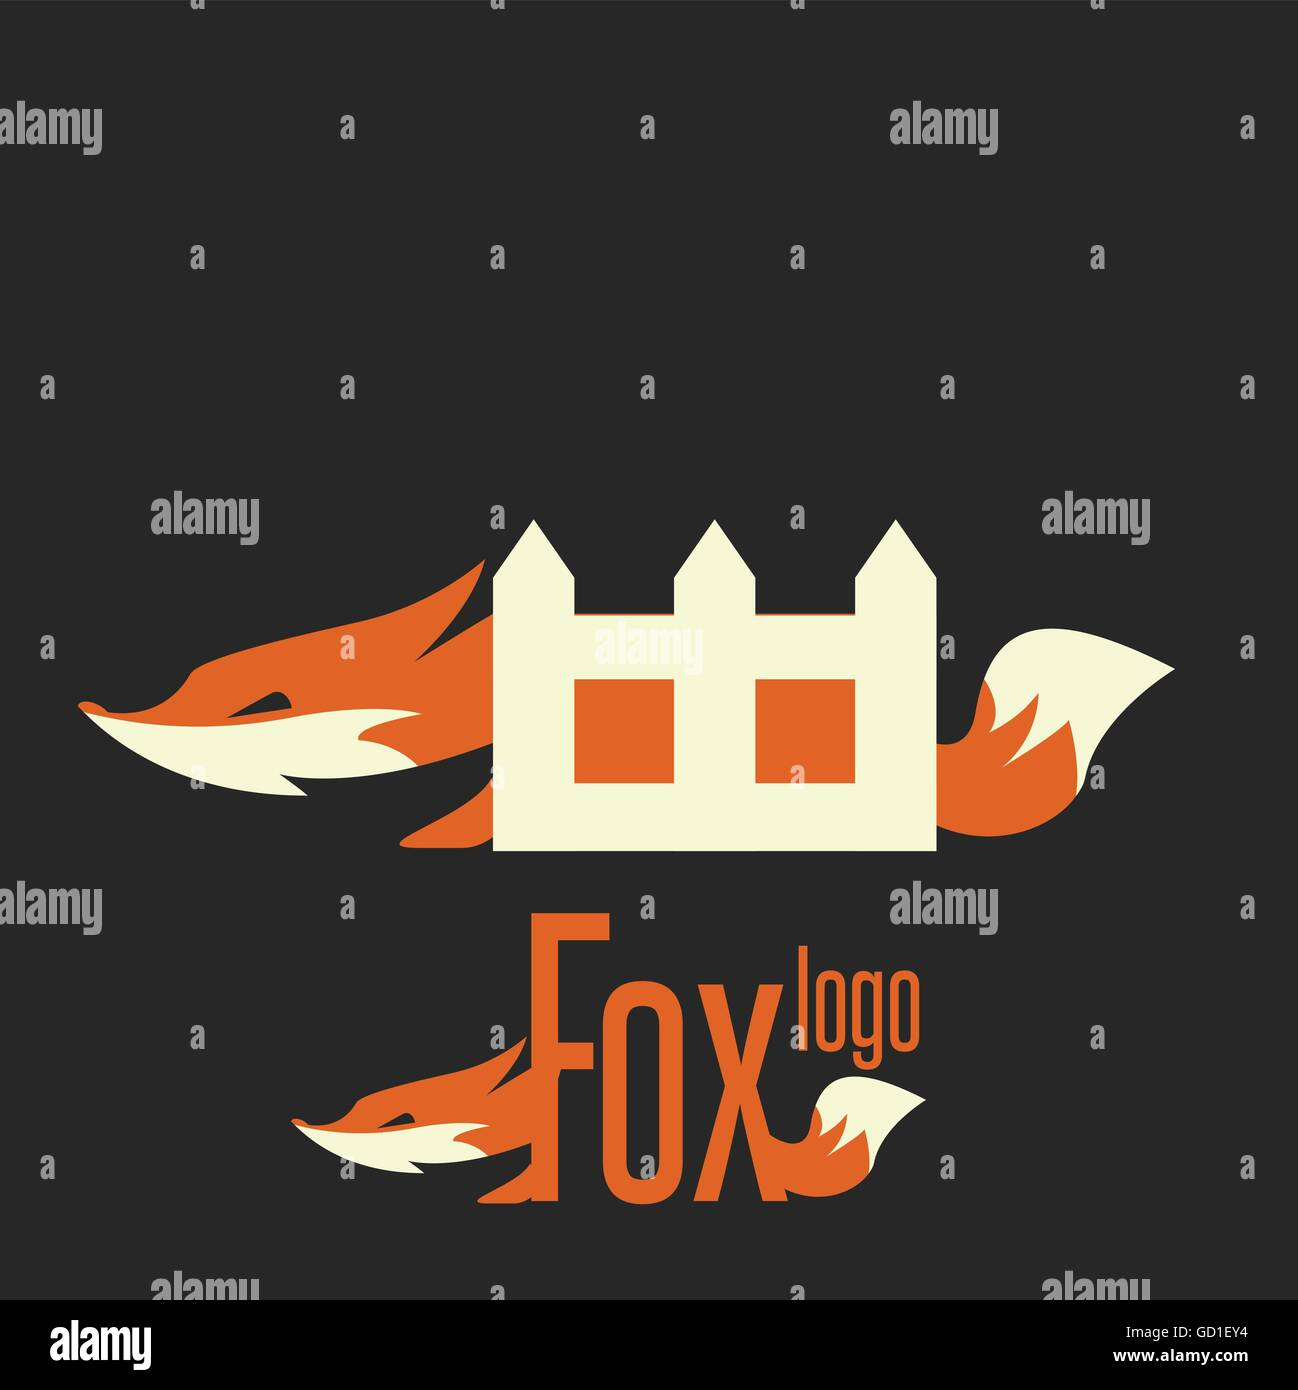 Fox Logo Designed In A Simple Way So It Can Be Use For Multiple Proposes Like